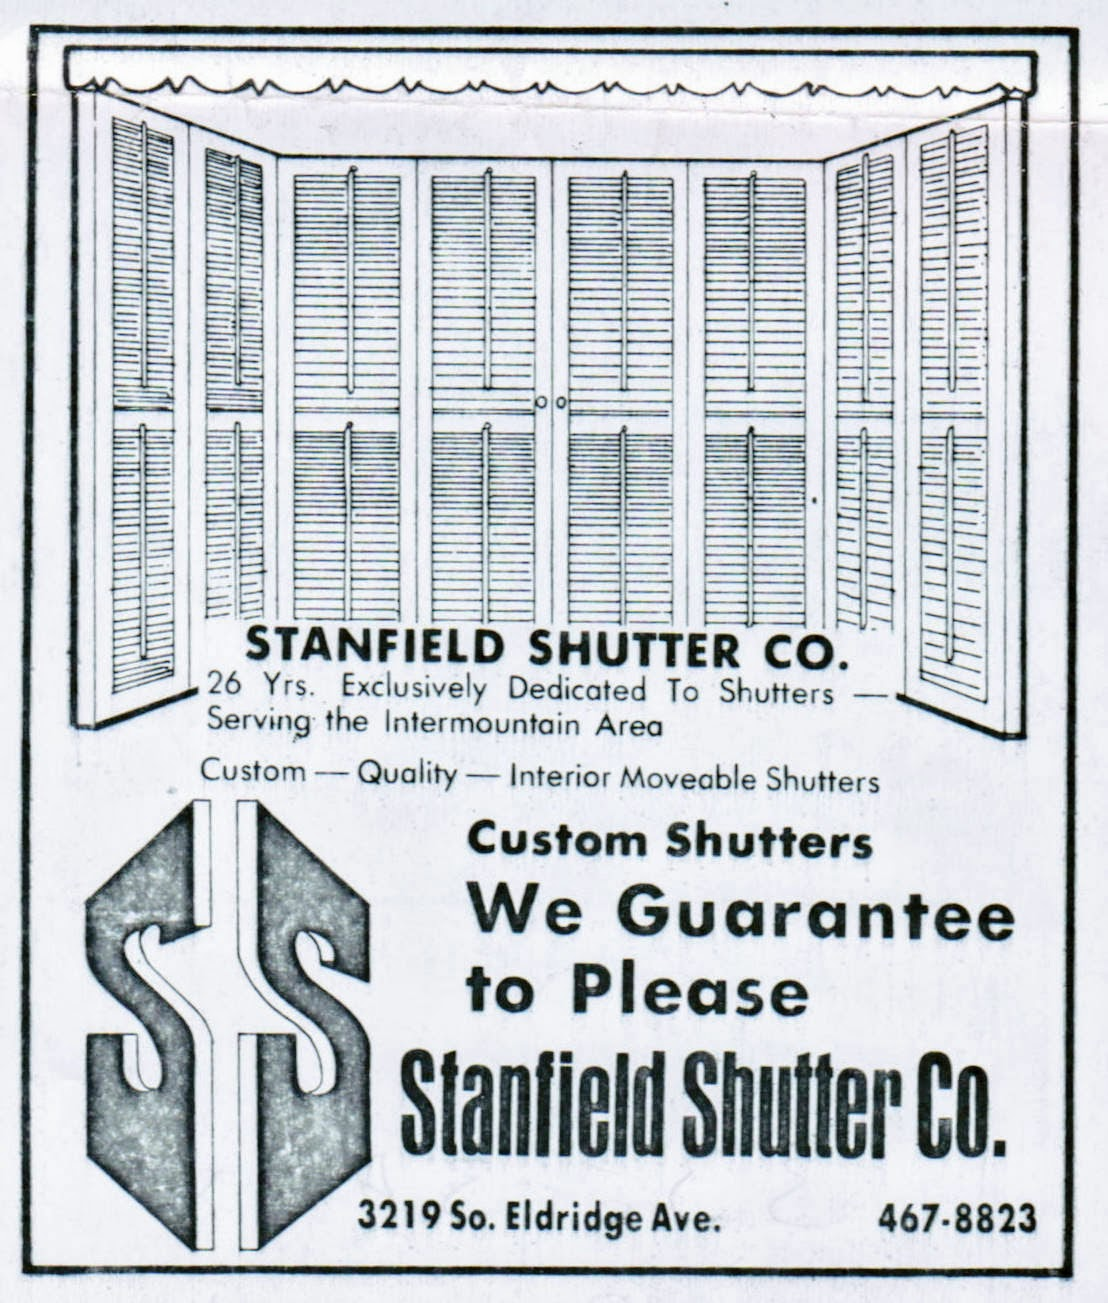 Stanfield Shutter ad from 1976